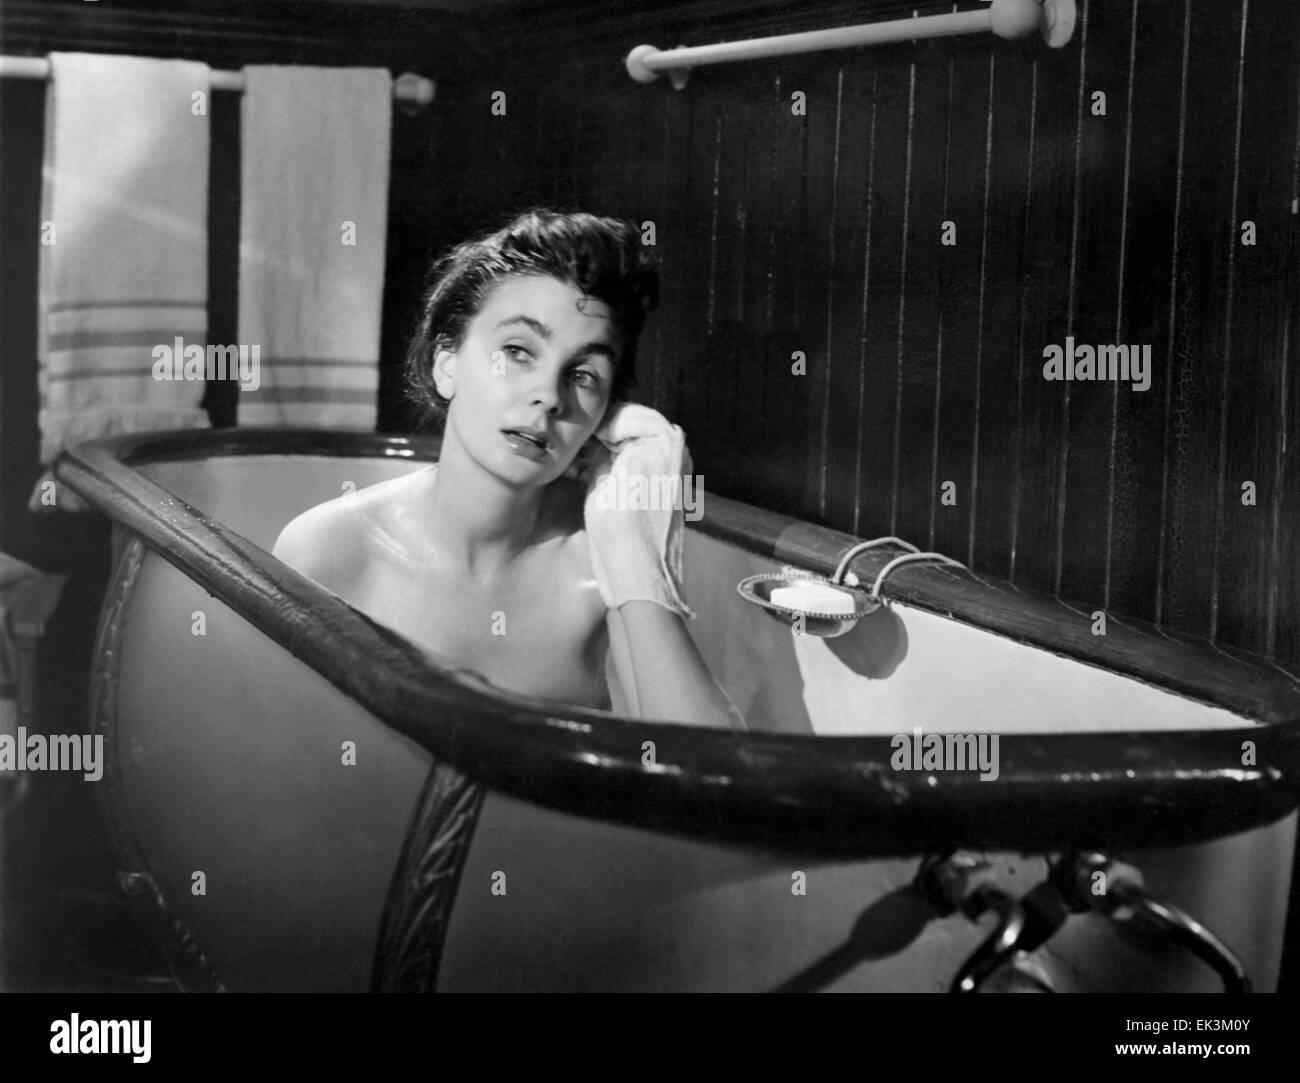 Jean Simmons nudes (78 photo), Sexy, Cleavage, Twitter, swimsuit 2018